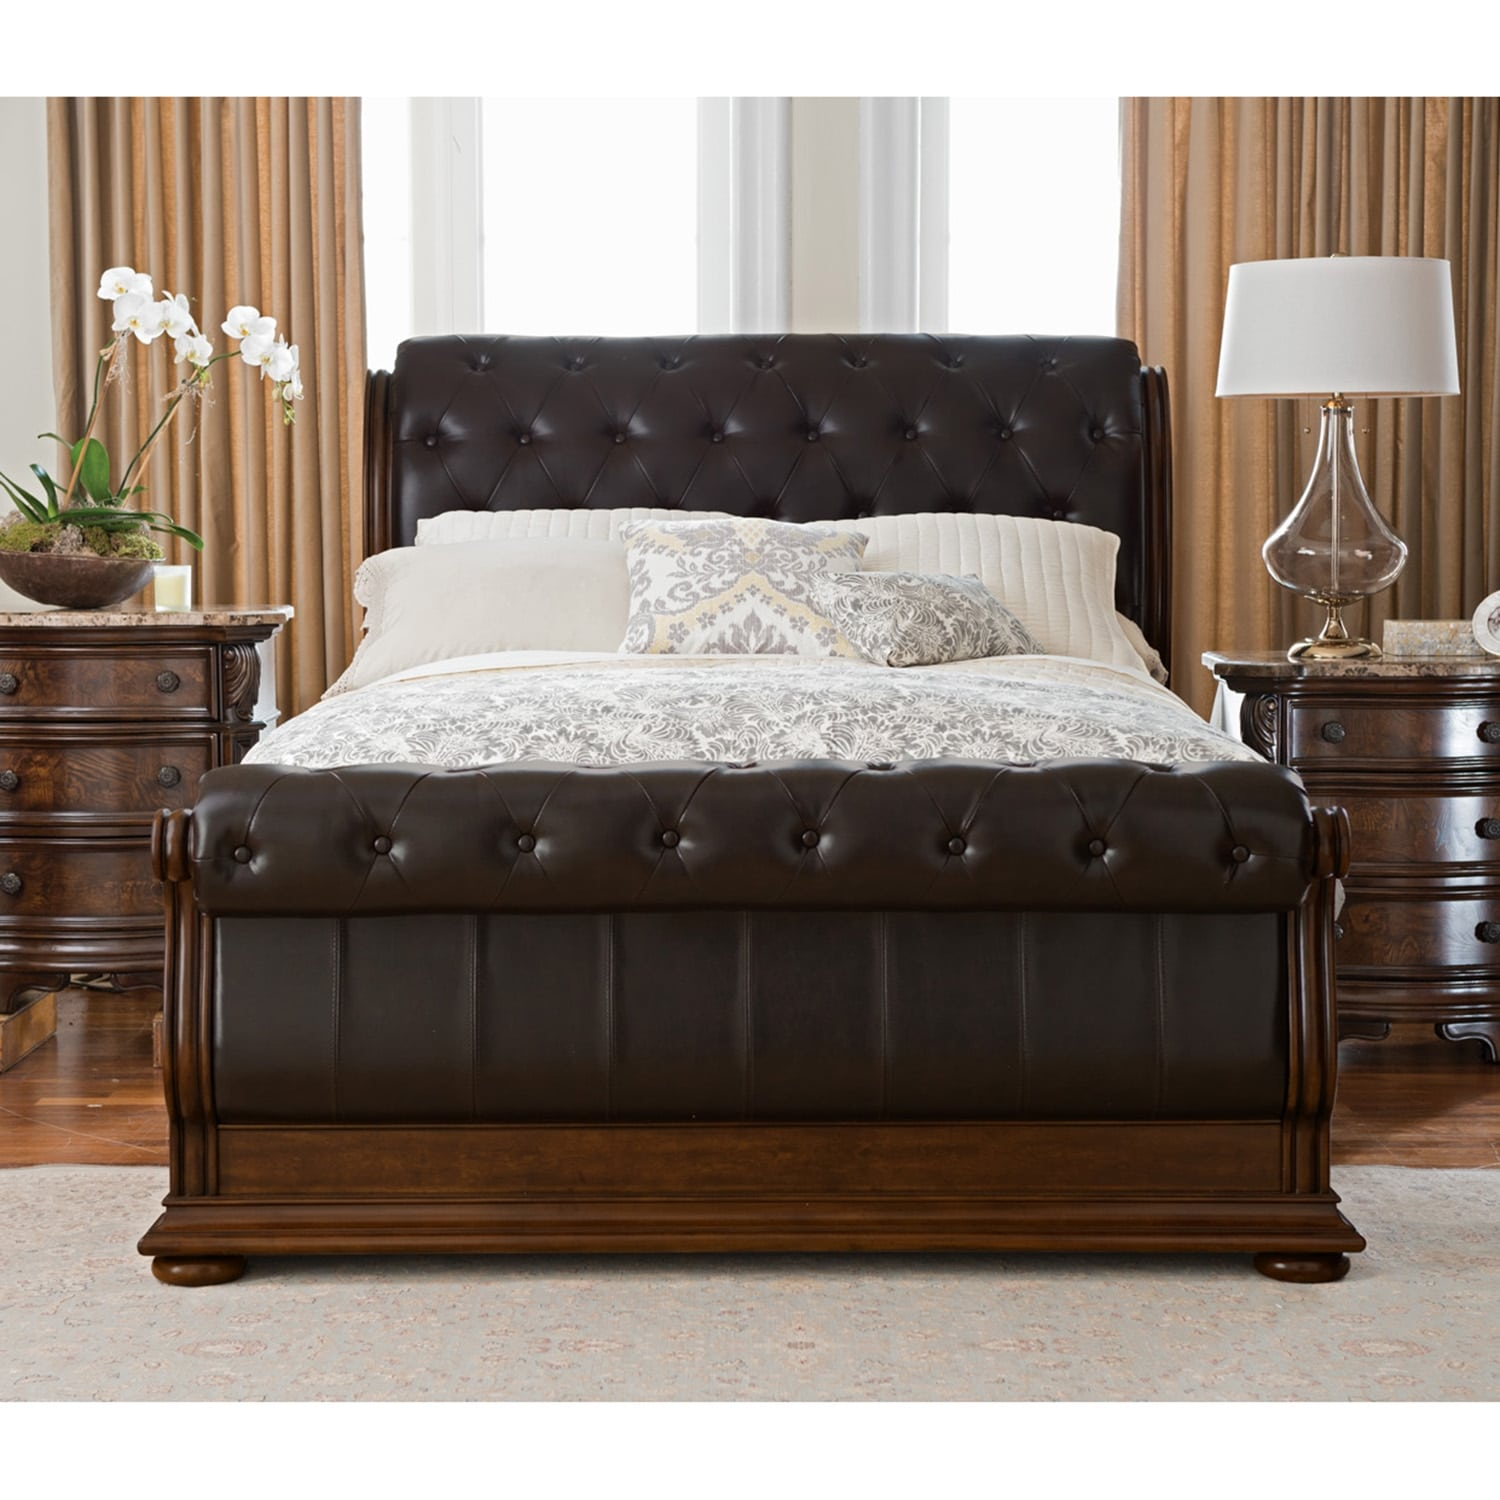 Monticello 5-Piece King Sleigh Bedroom Set - Pecan | American ...